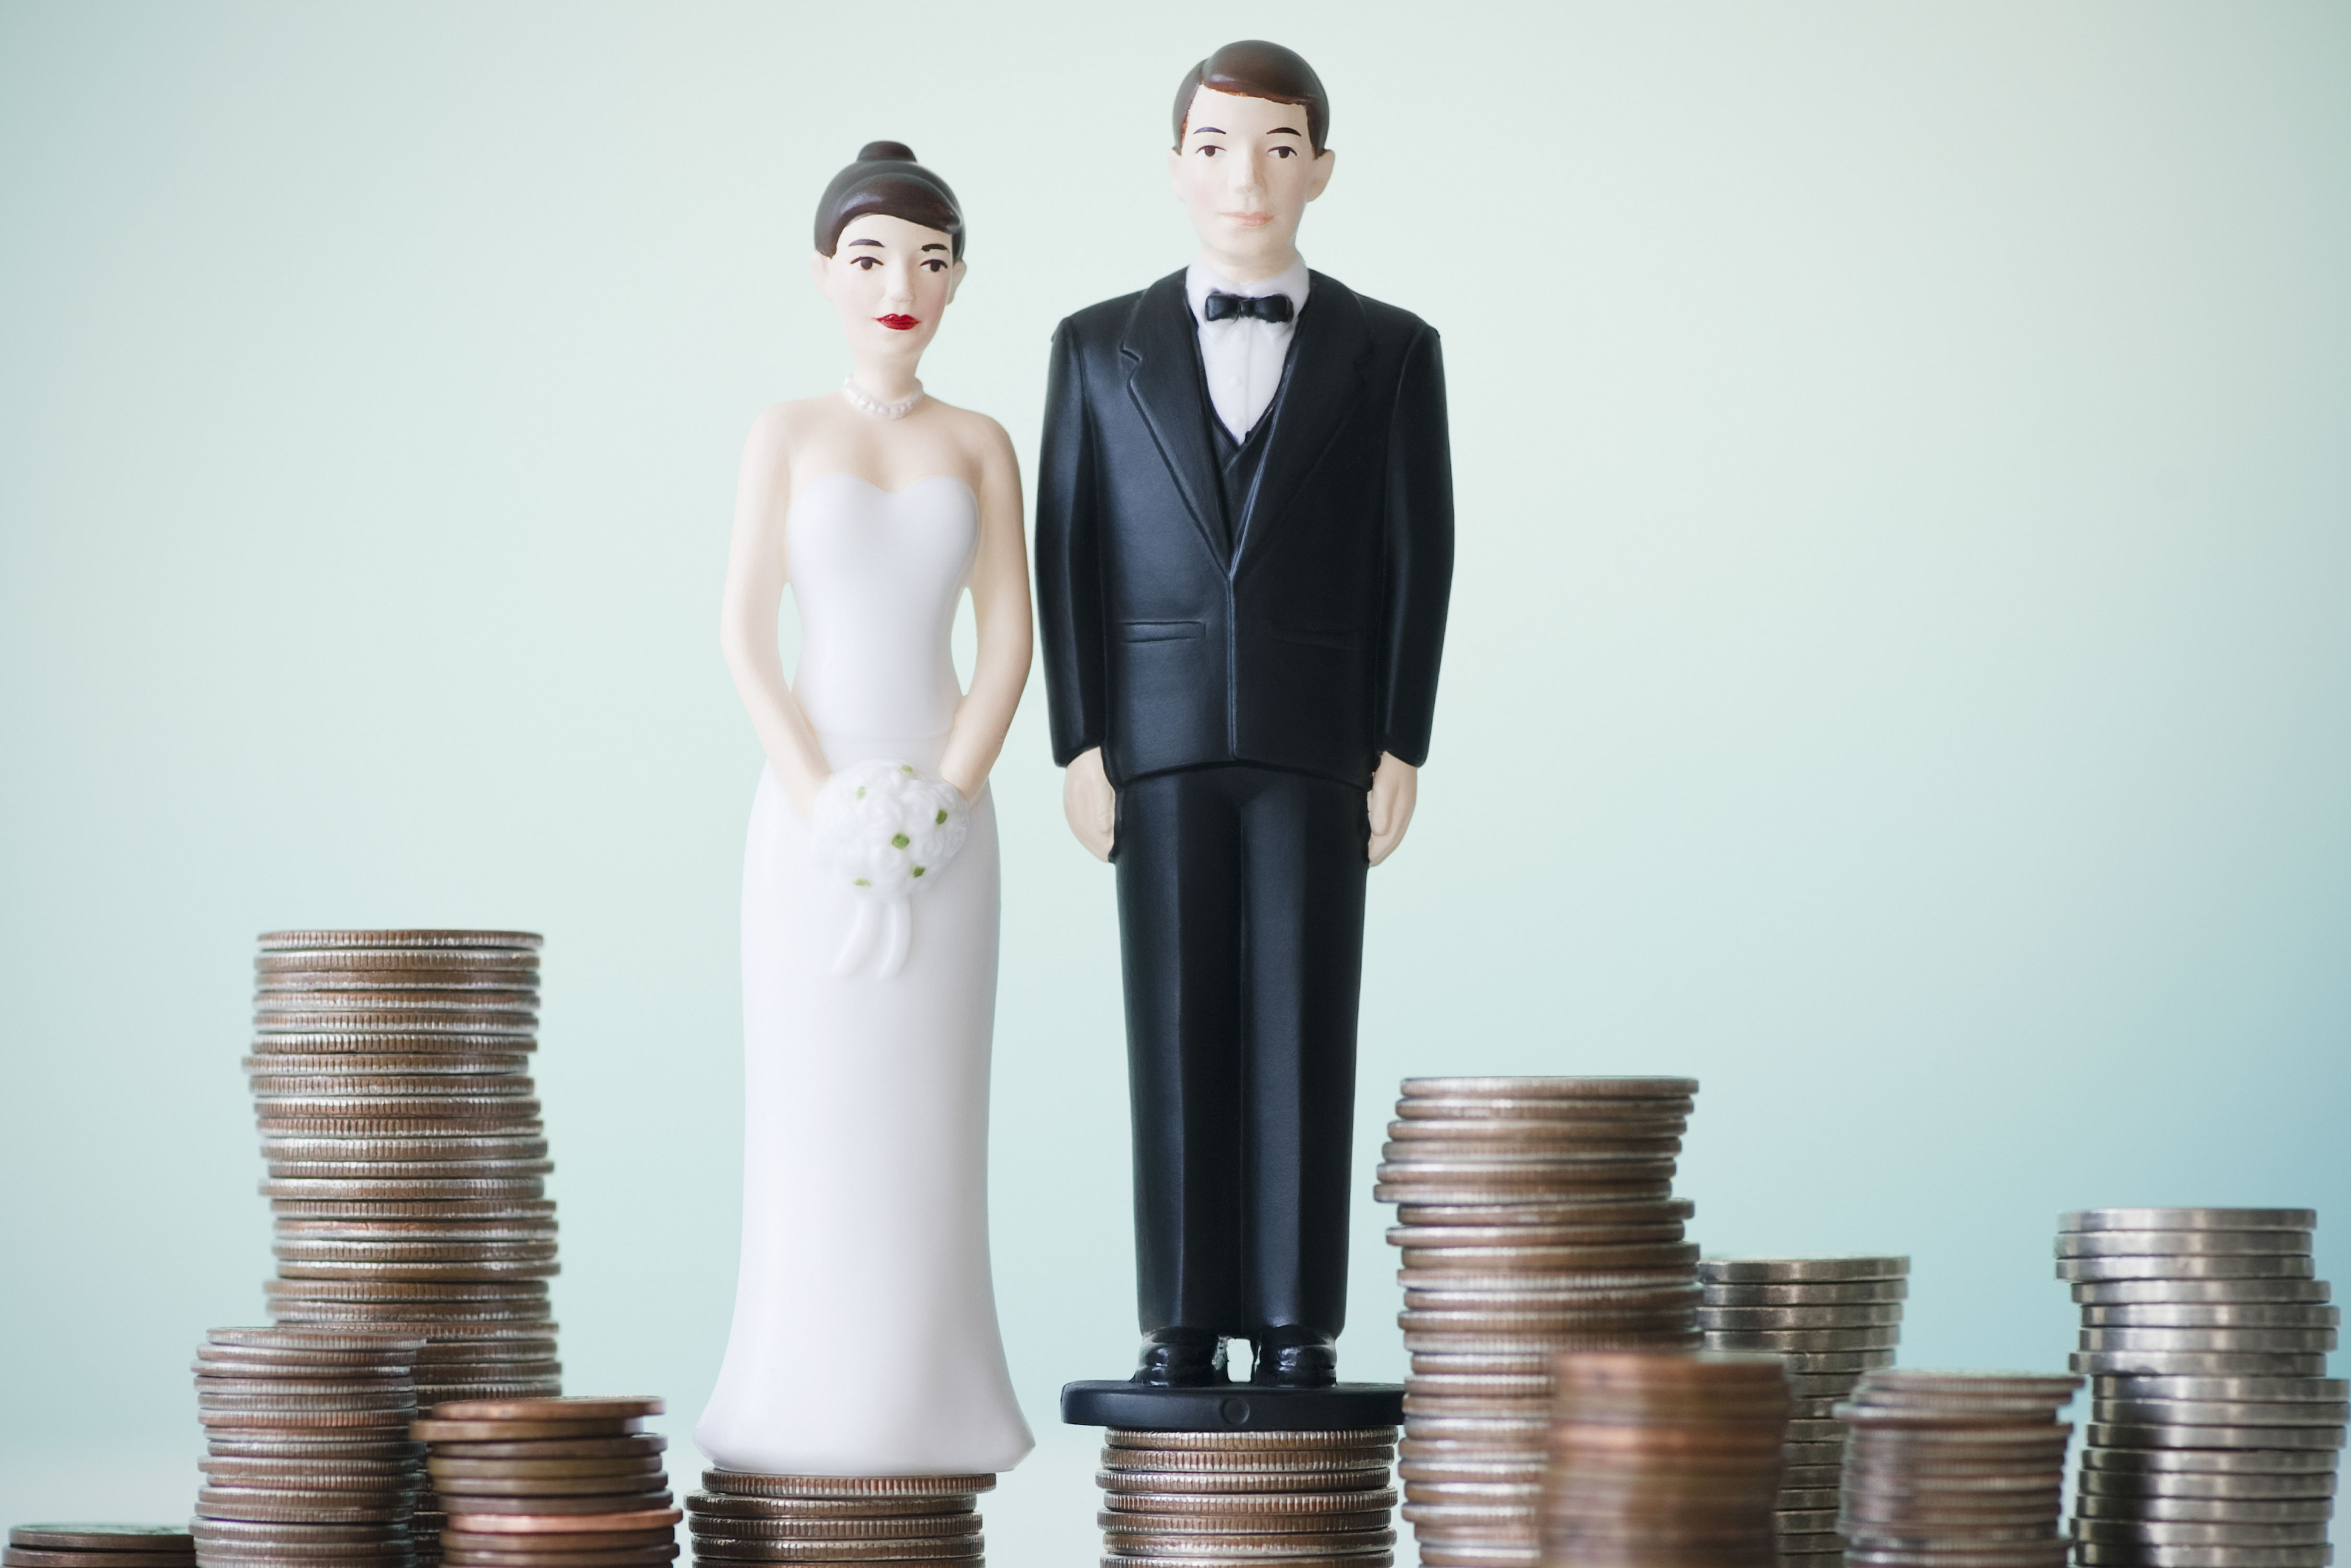 Where To Splurge And Where To Save With Your Wedding Budget